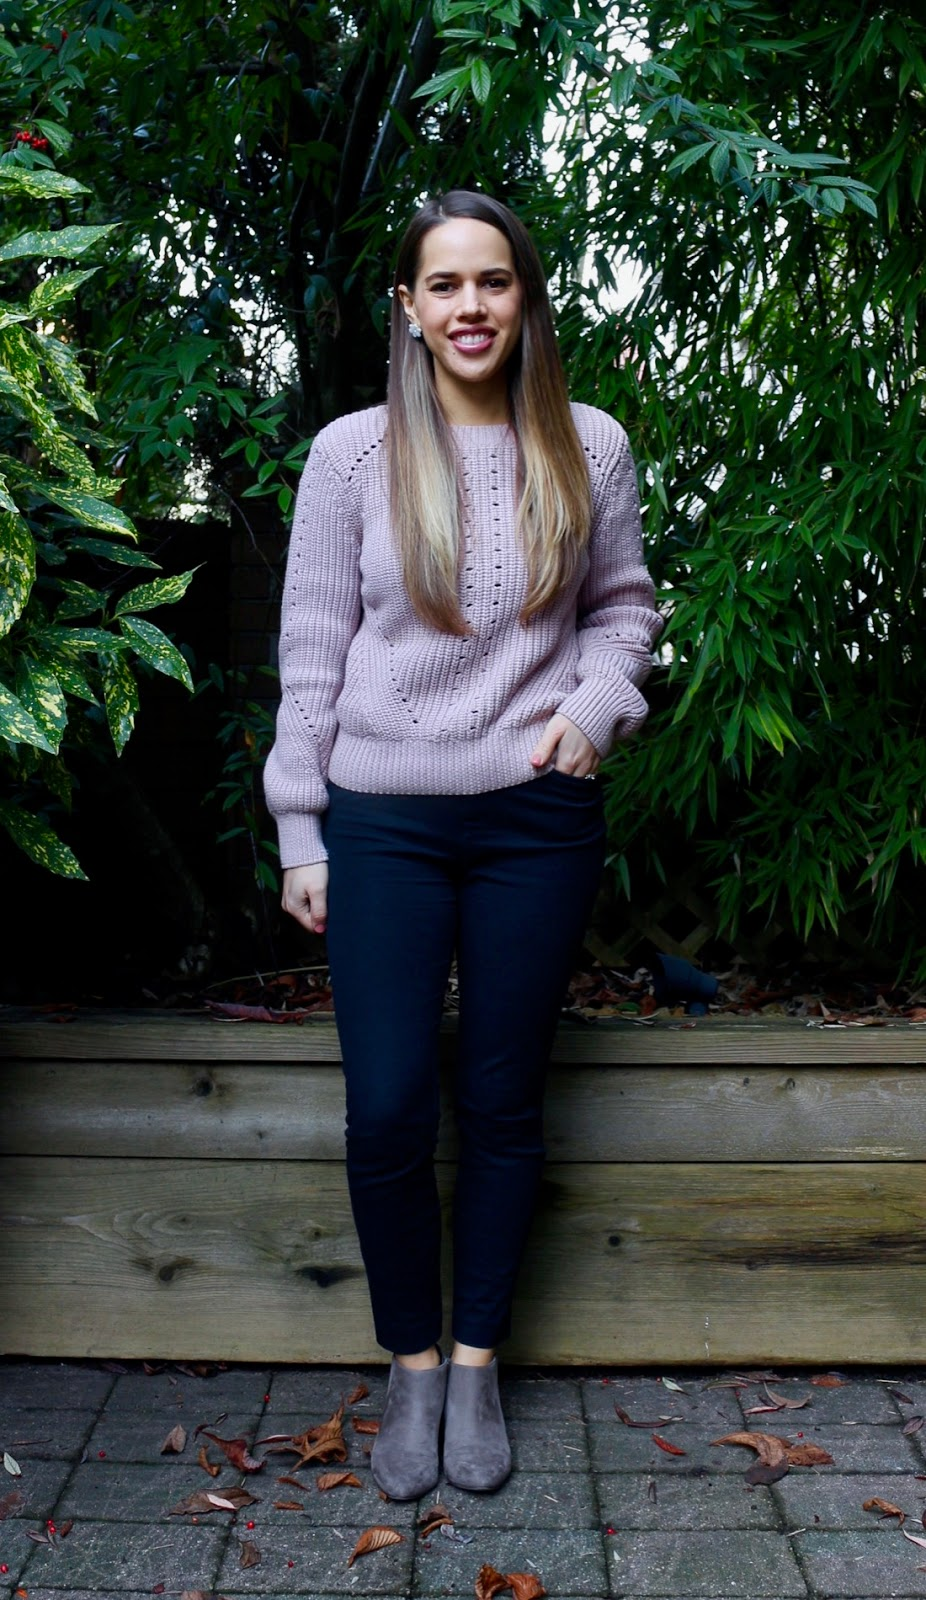 Jules in Flats - H&M Pink Knit Sweater + Ankle Booties (Business Casual Winter Workwear on a Budget)